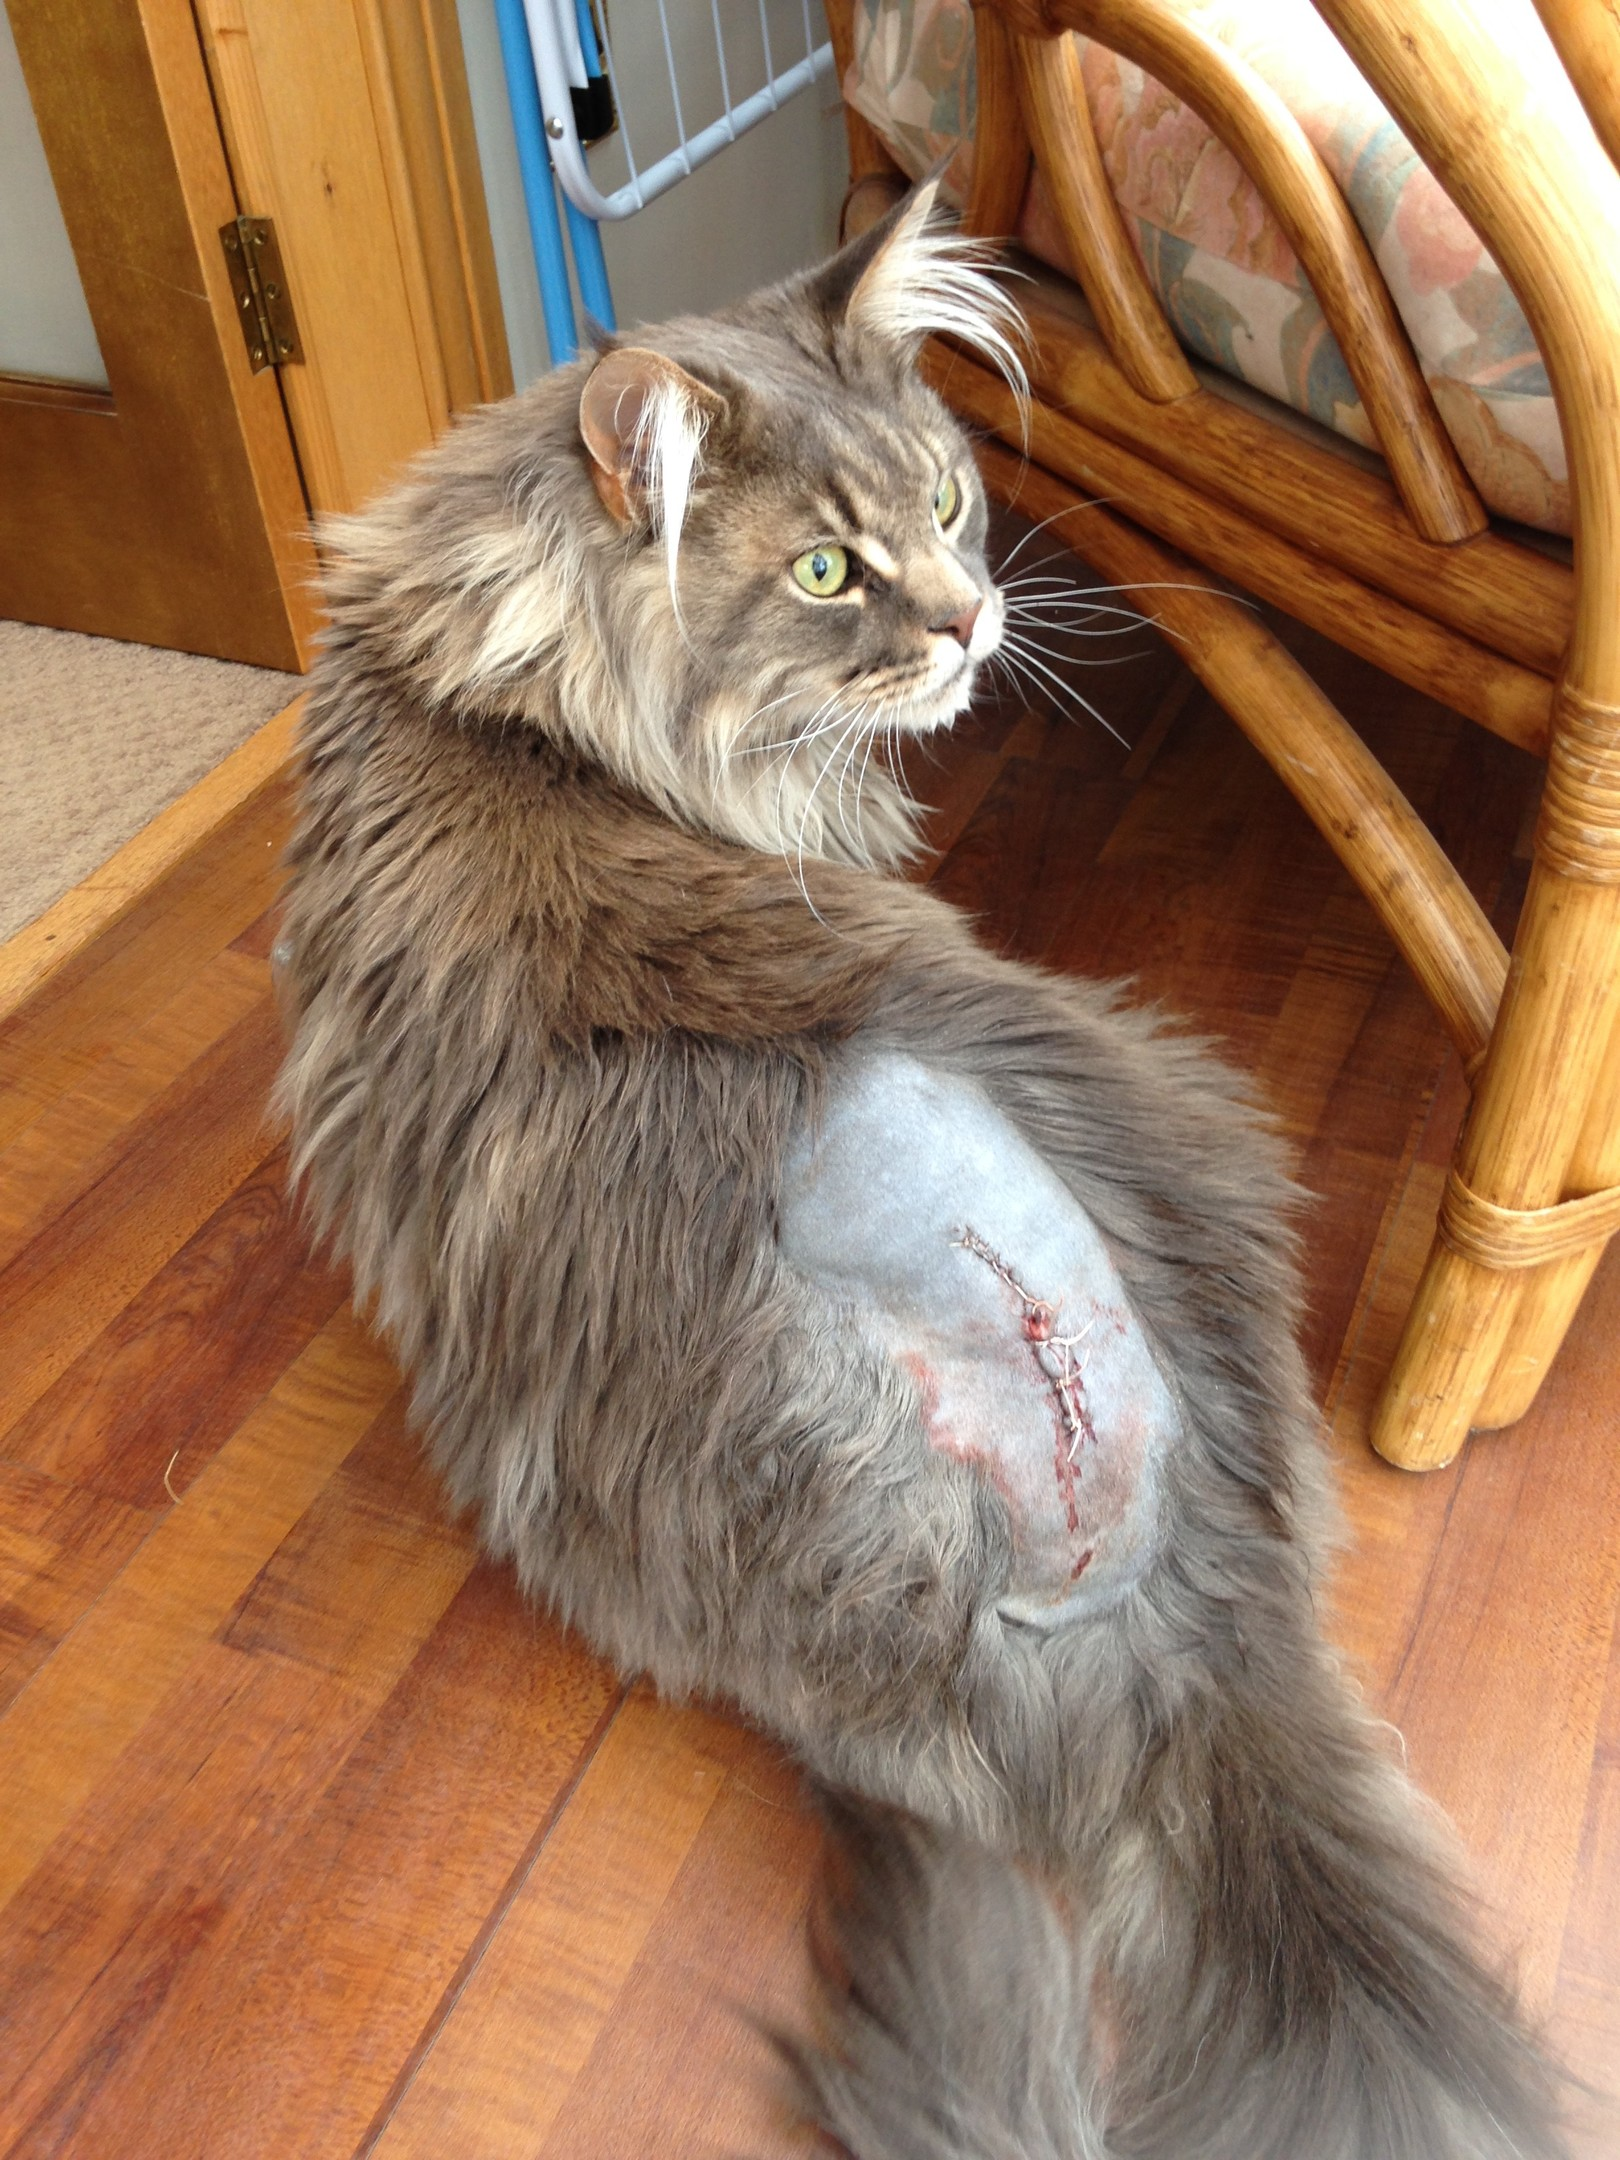 Bue the cat was shot